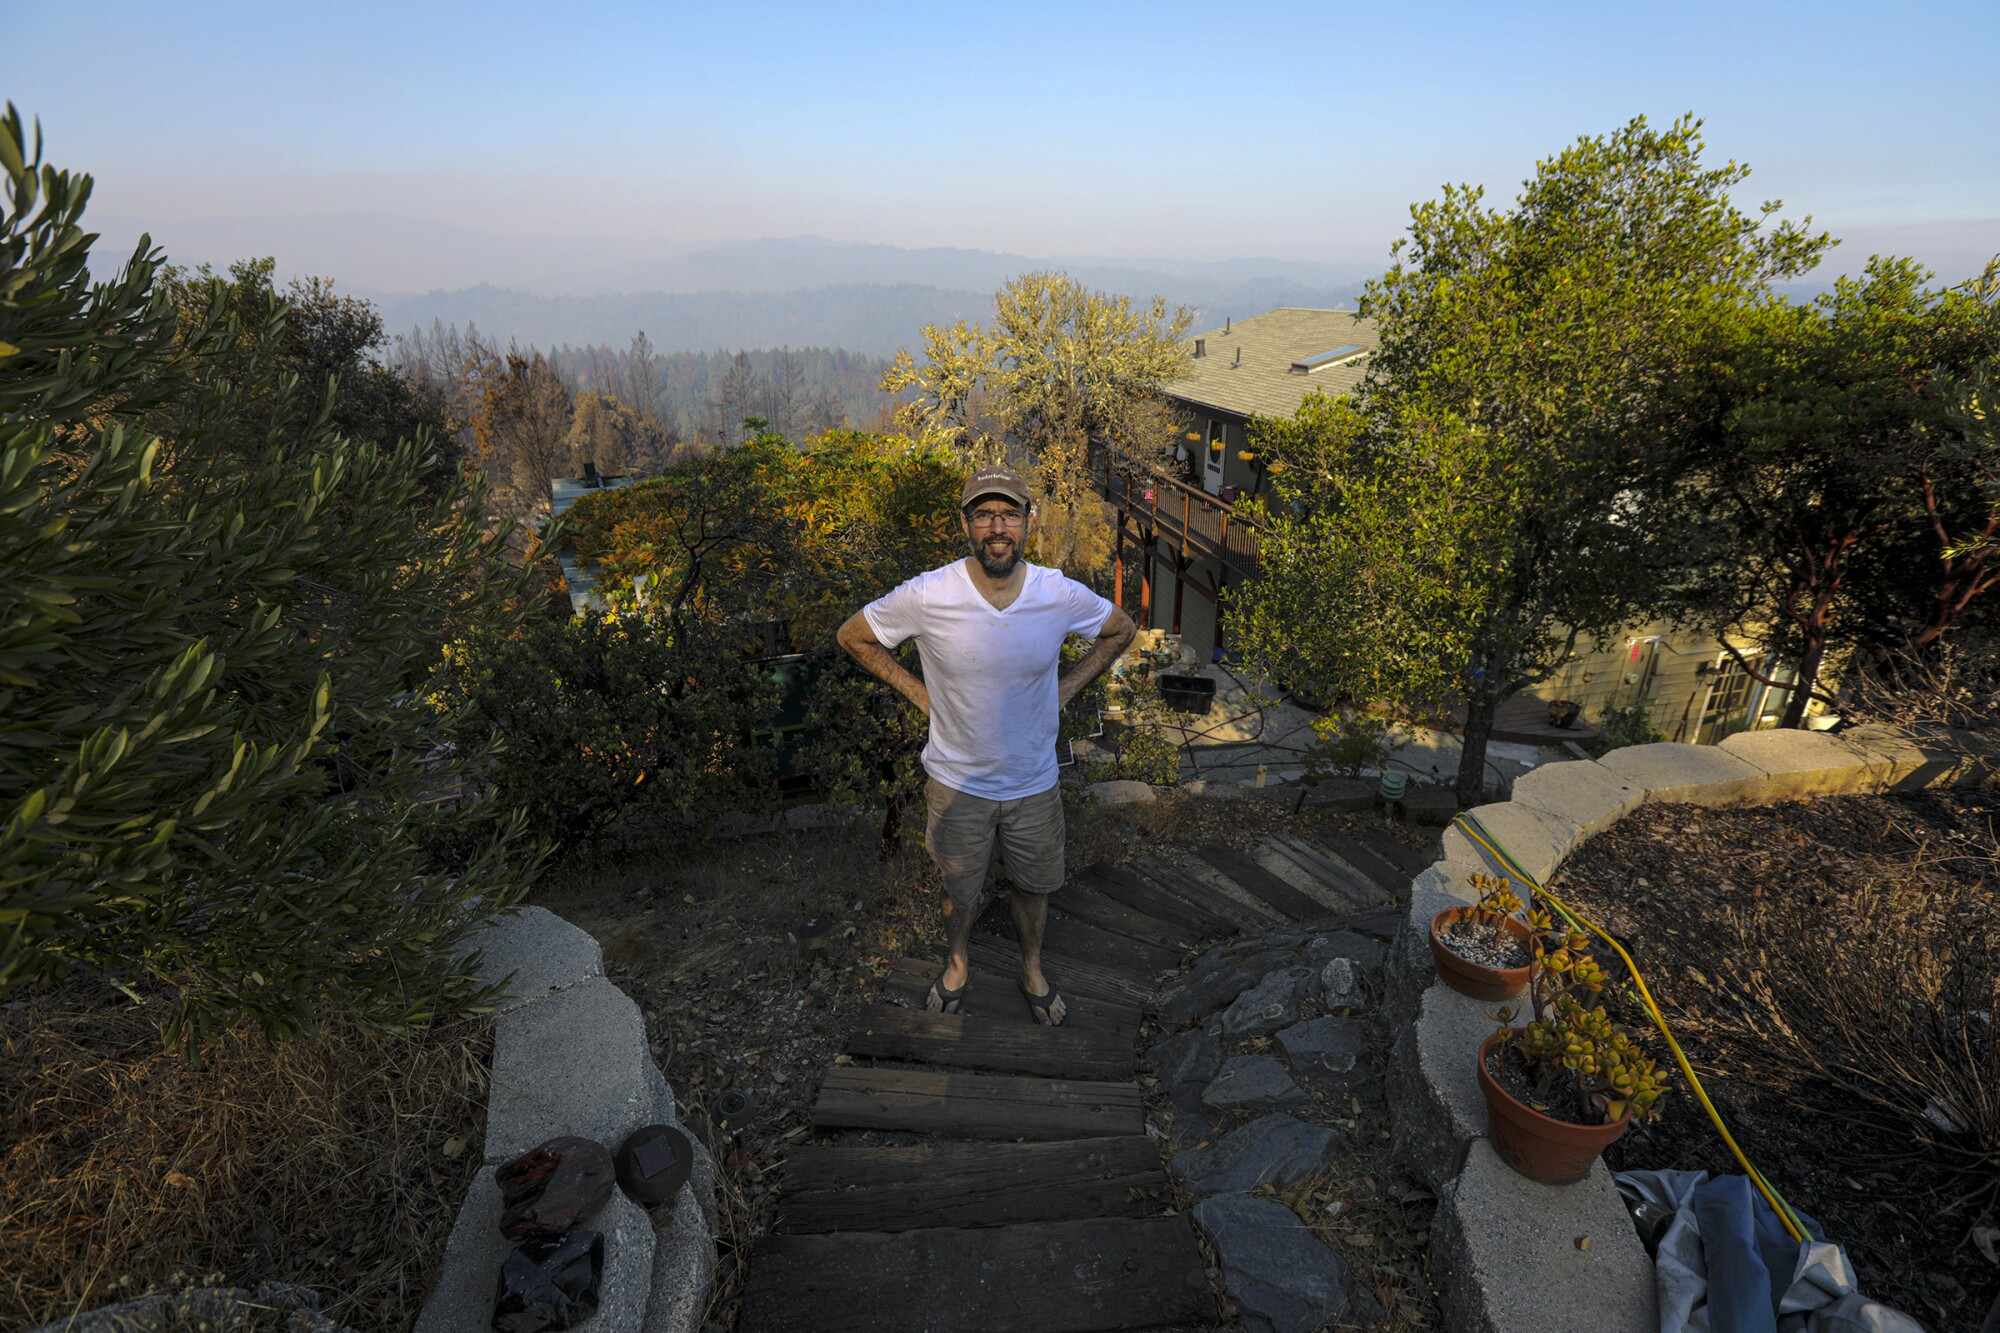 Noah Standridge defied the orders to evacuate his home amid the CZU Lightning Complex fire.